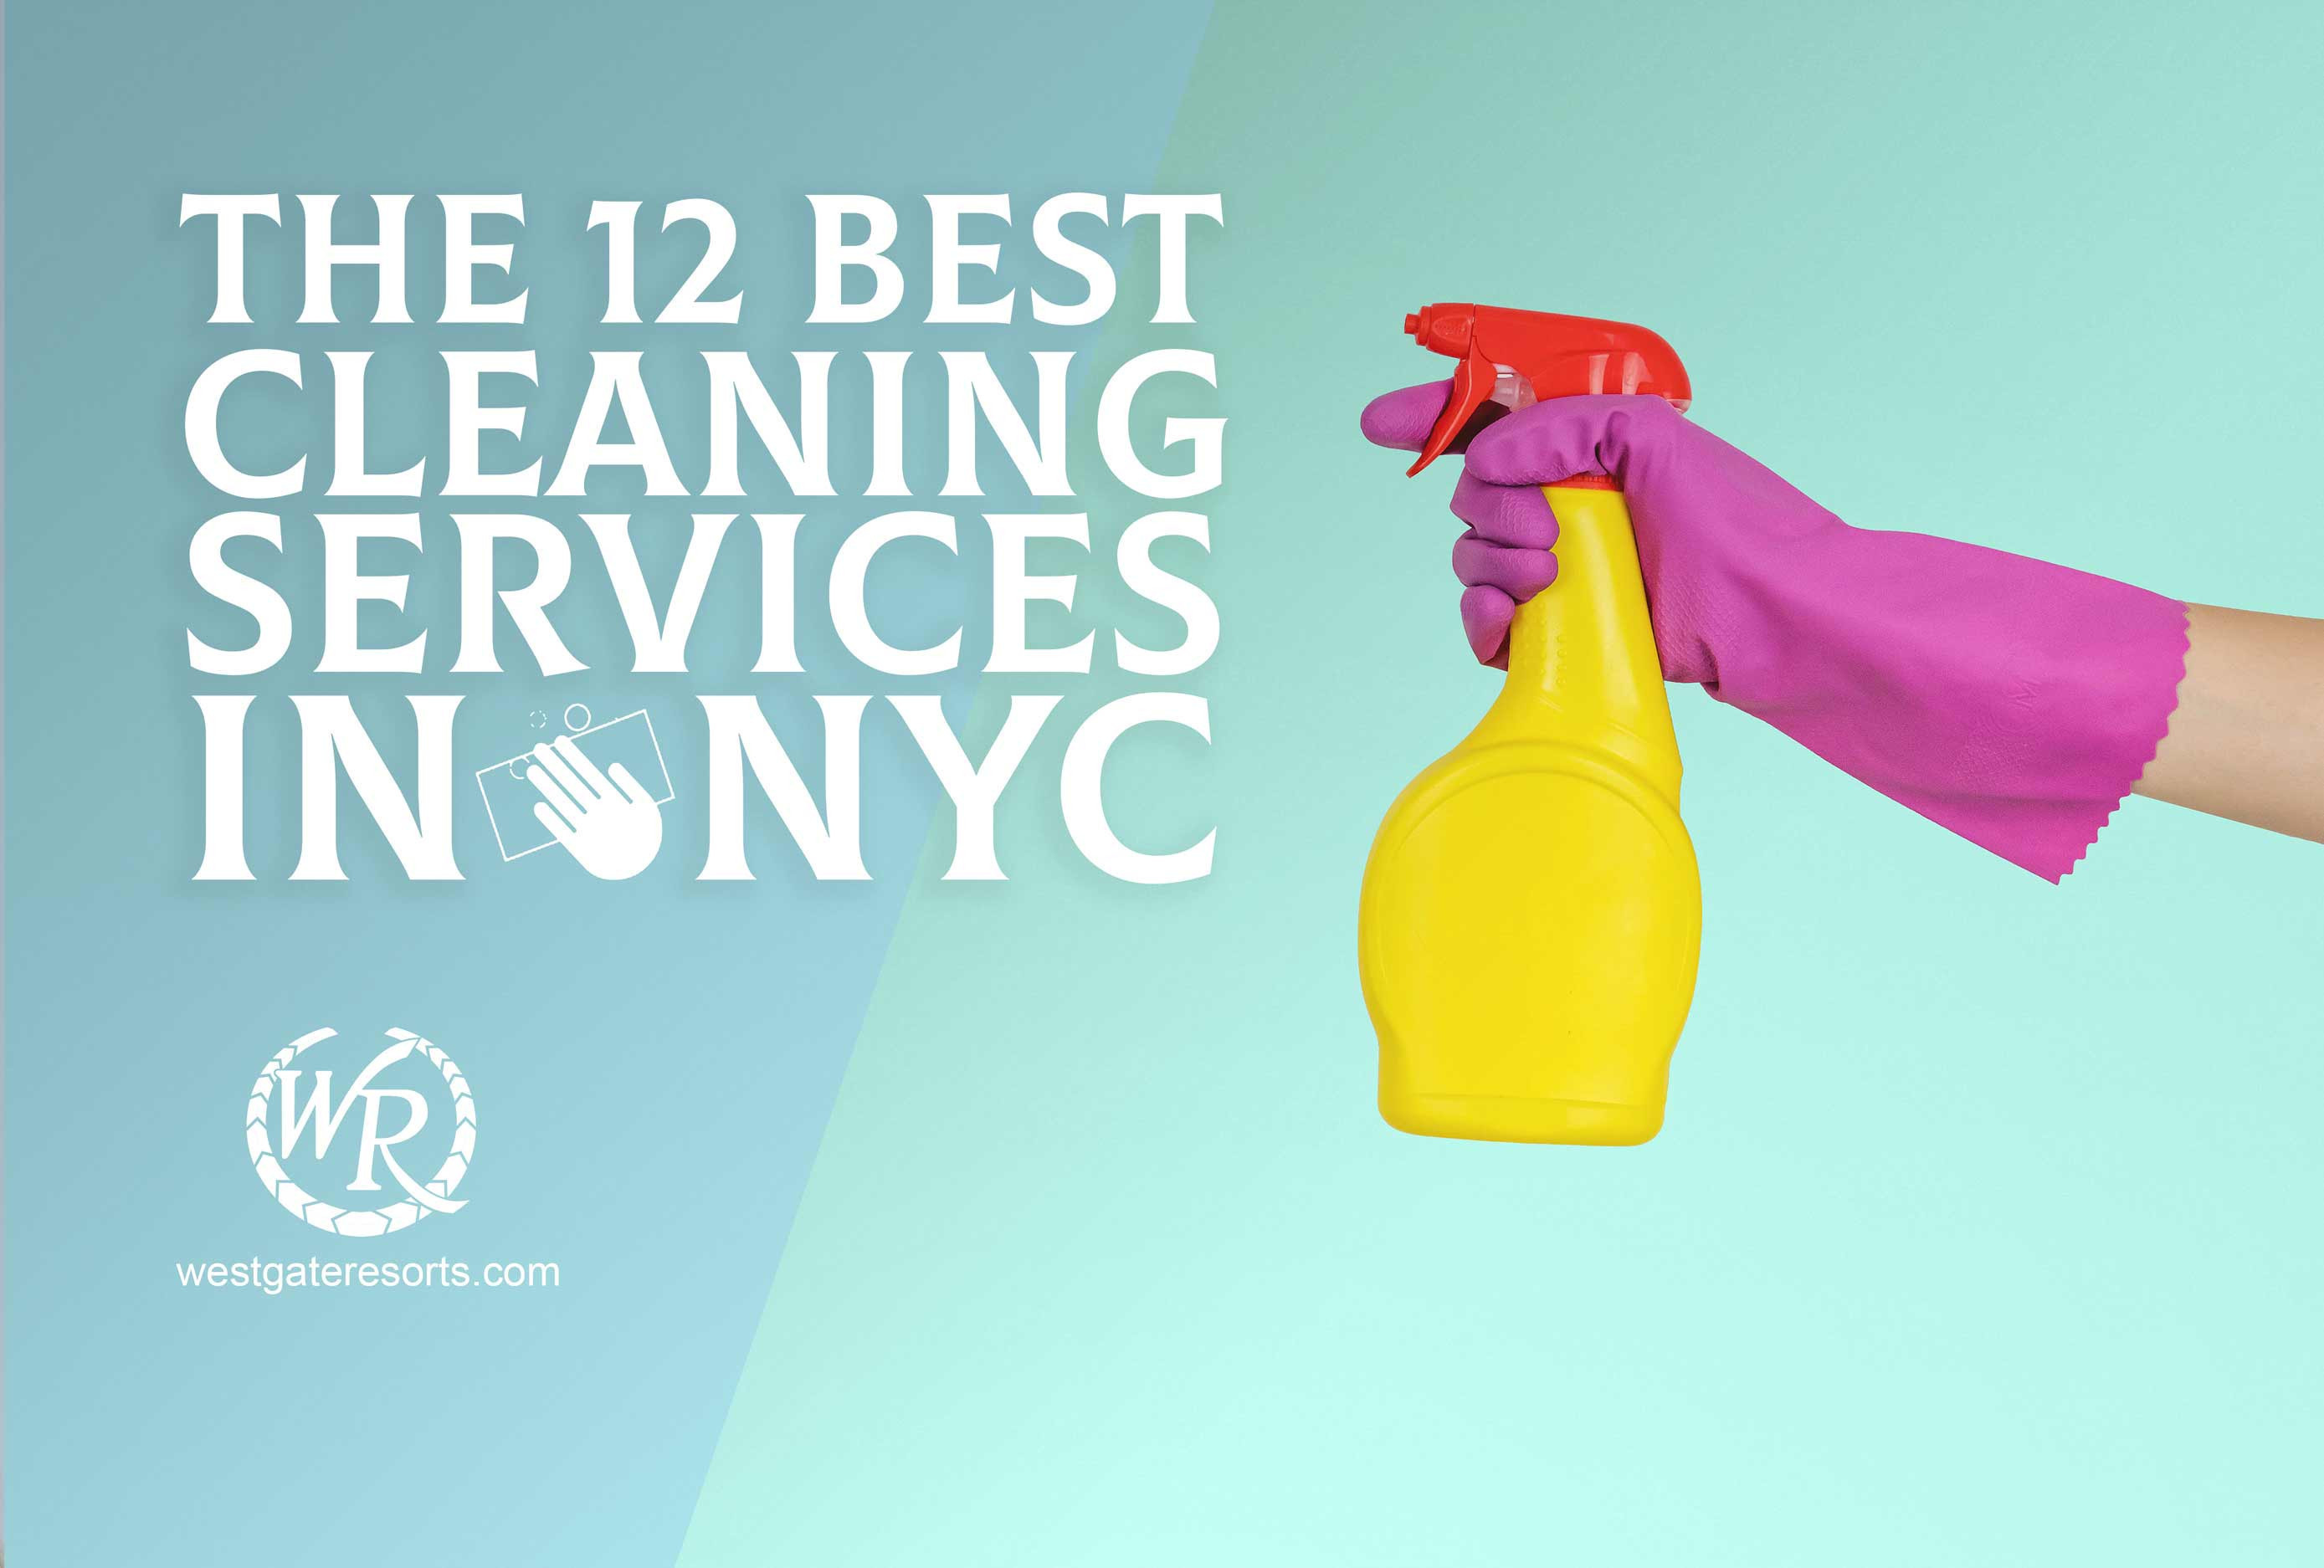 The 12 Best Cleaning Services in NYC